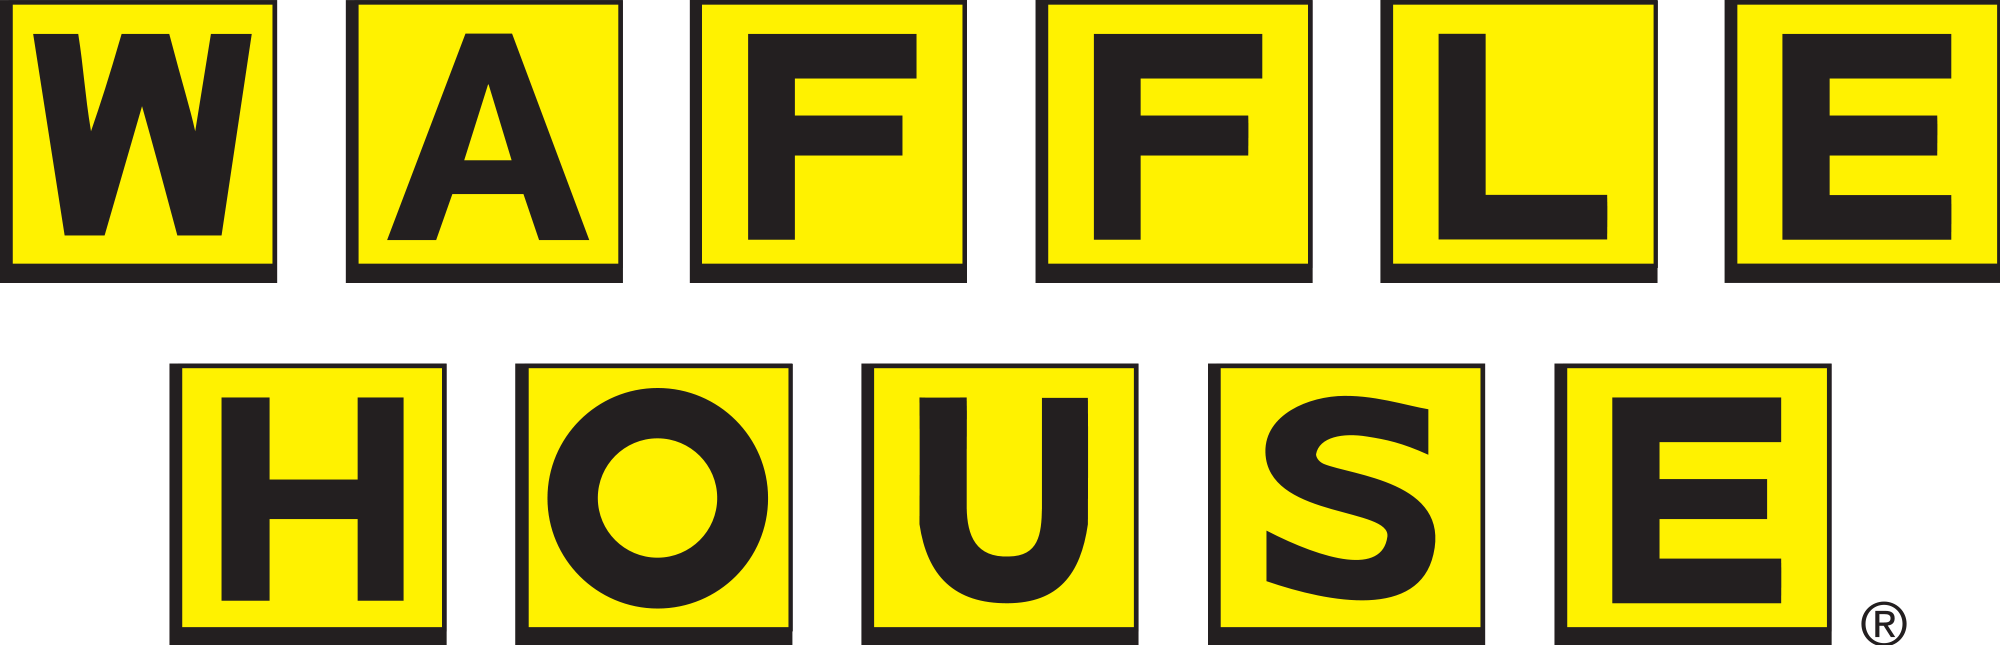 waffle house png